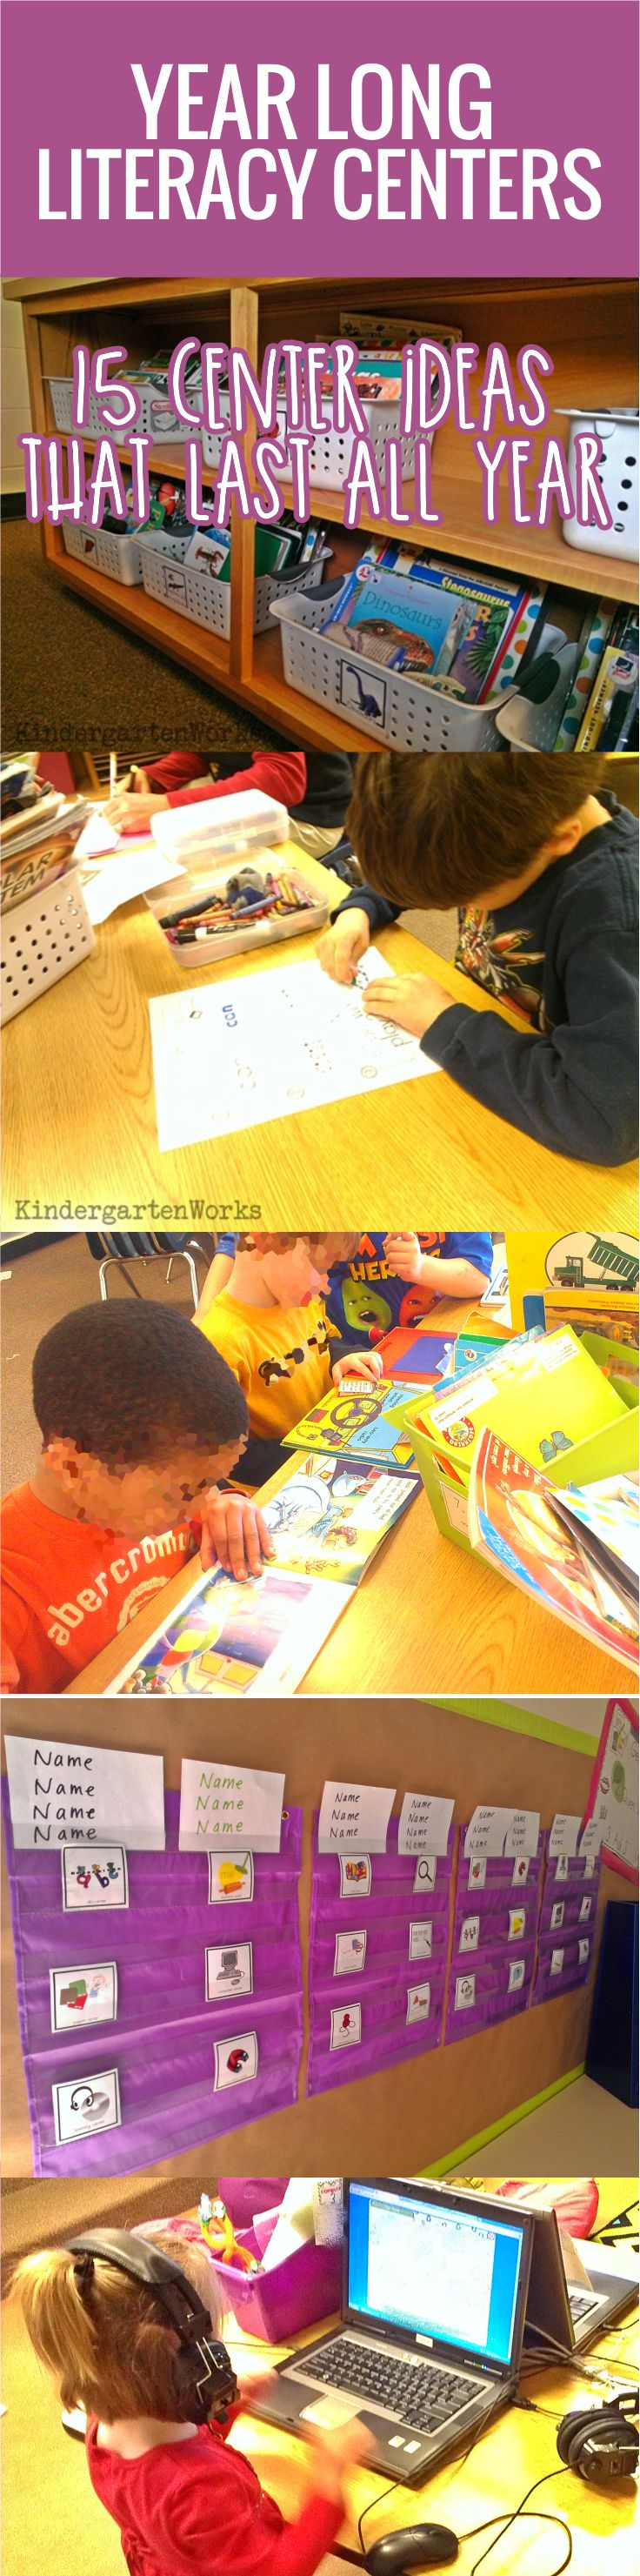 Literacy centers can be a blessing or a pain. I think it all hinges on the design, organization and effectiveness behind them that makes a difference. This is my philosophy on how to create literacy centers that are smart for me, the teacher, and effective for my kindergarten students.